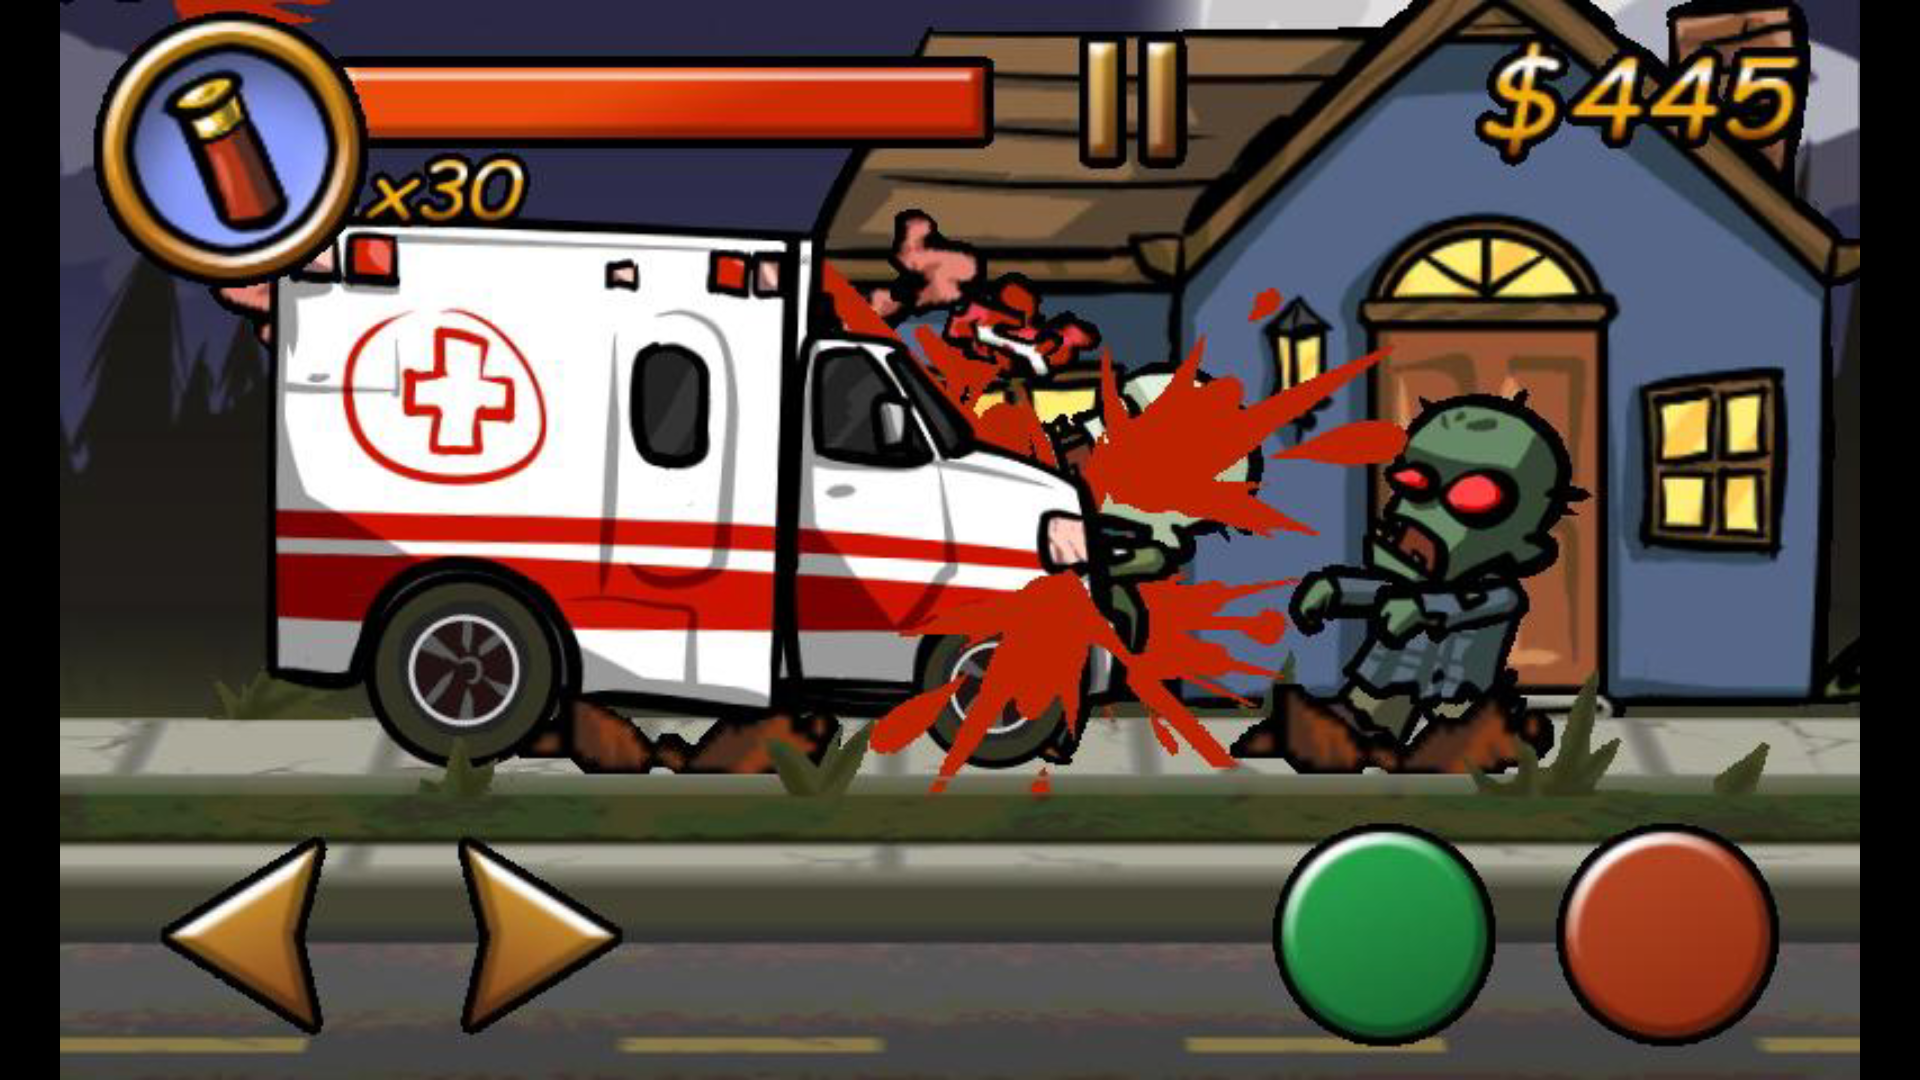 Play Zombieland Game Here - A Shooting Game on